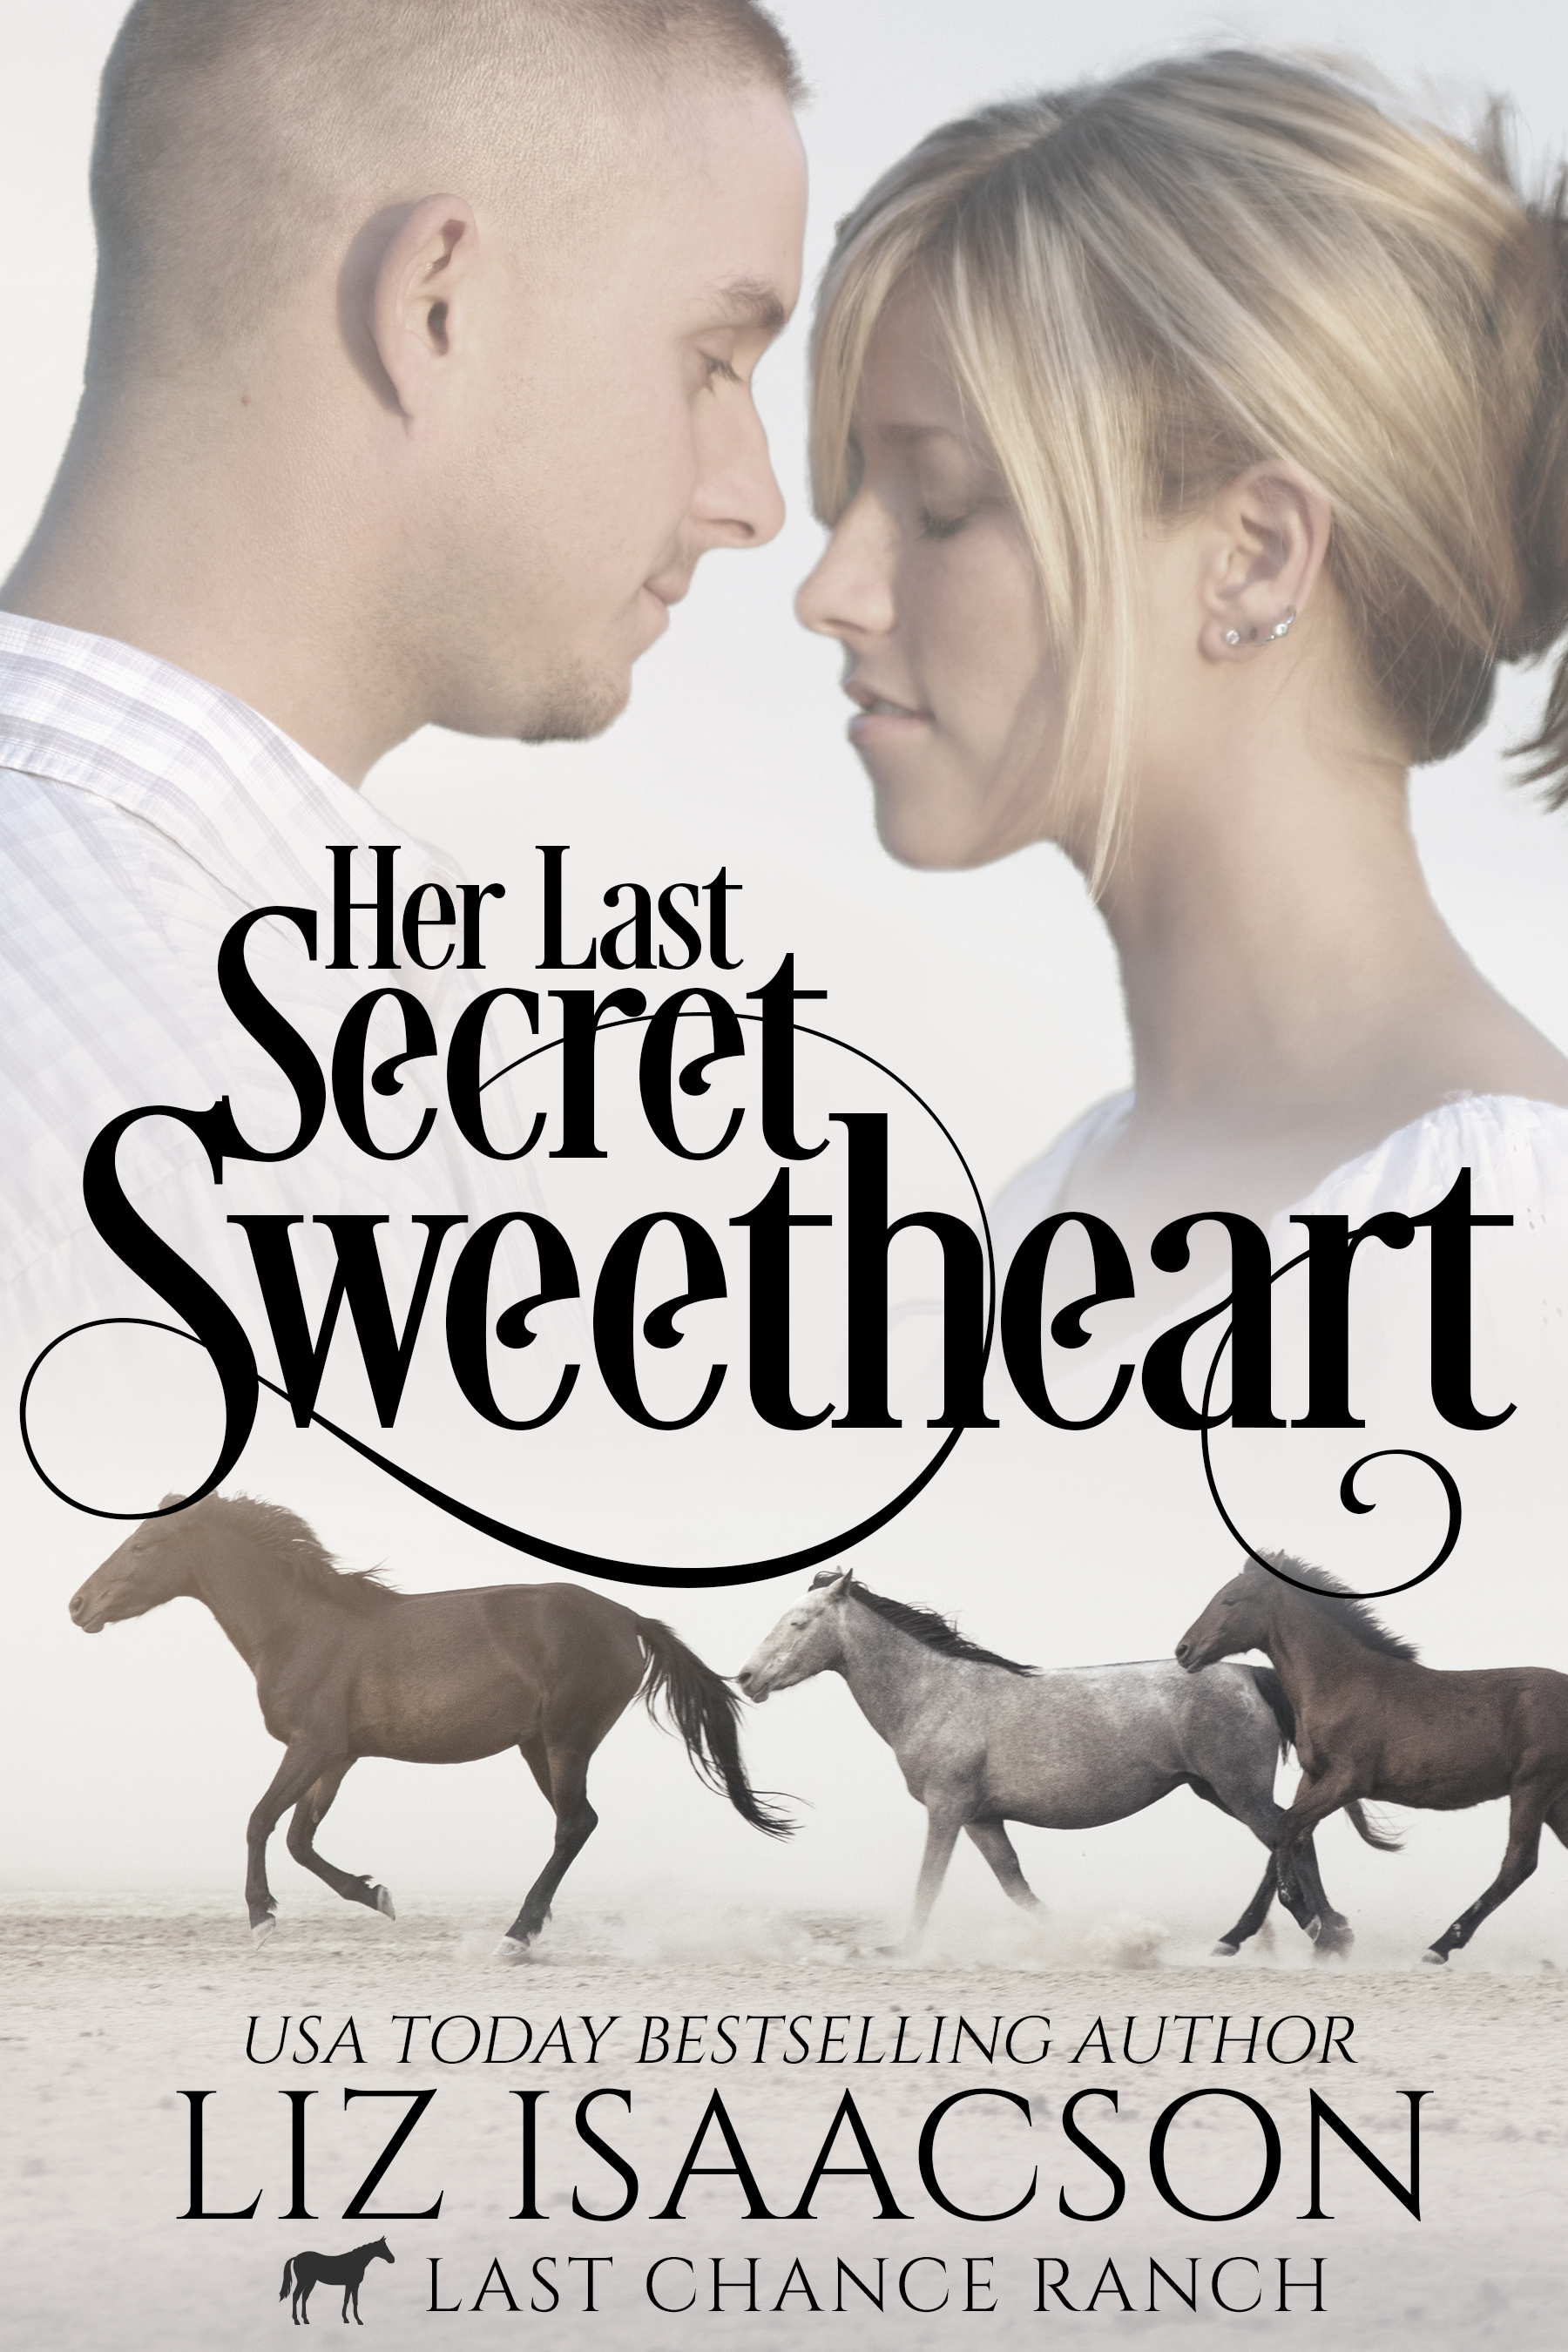 M1_Her_Last_Secret_Sweetheart